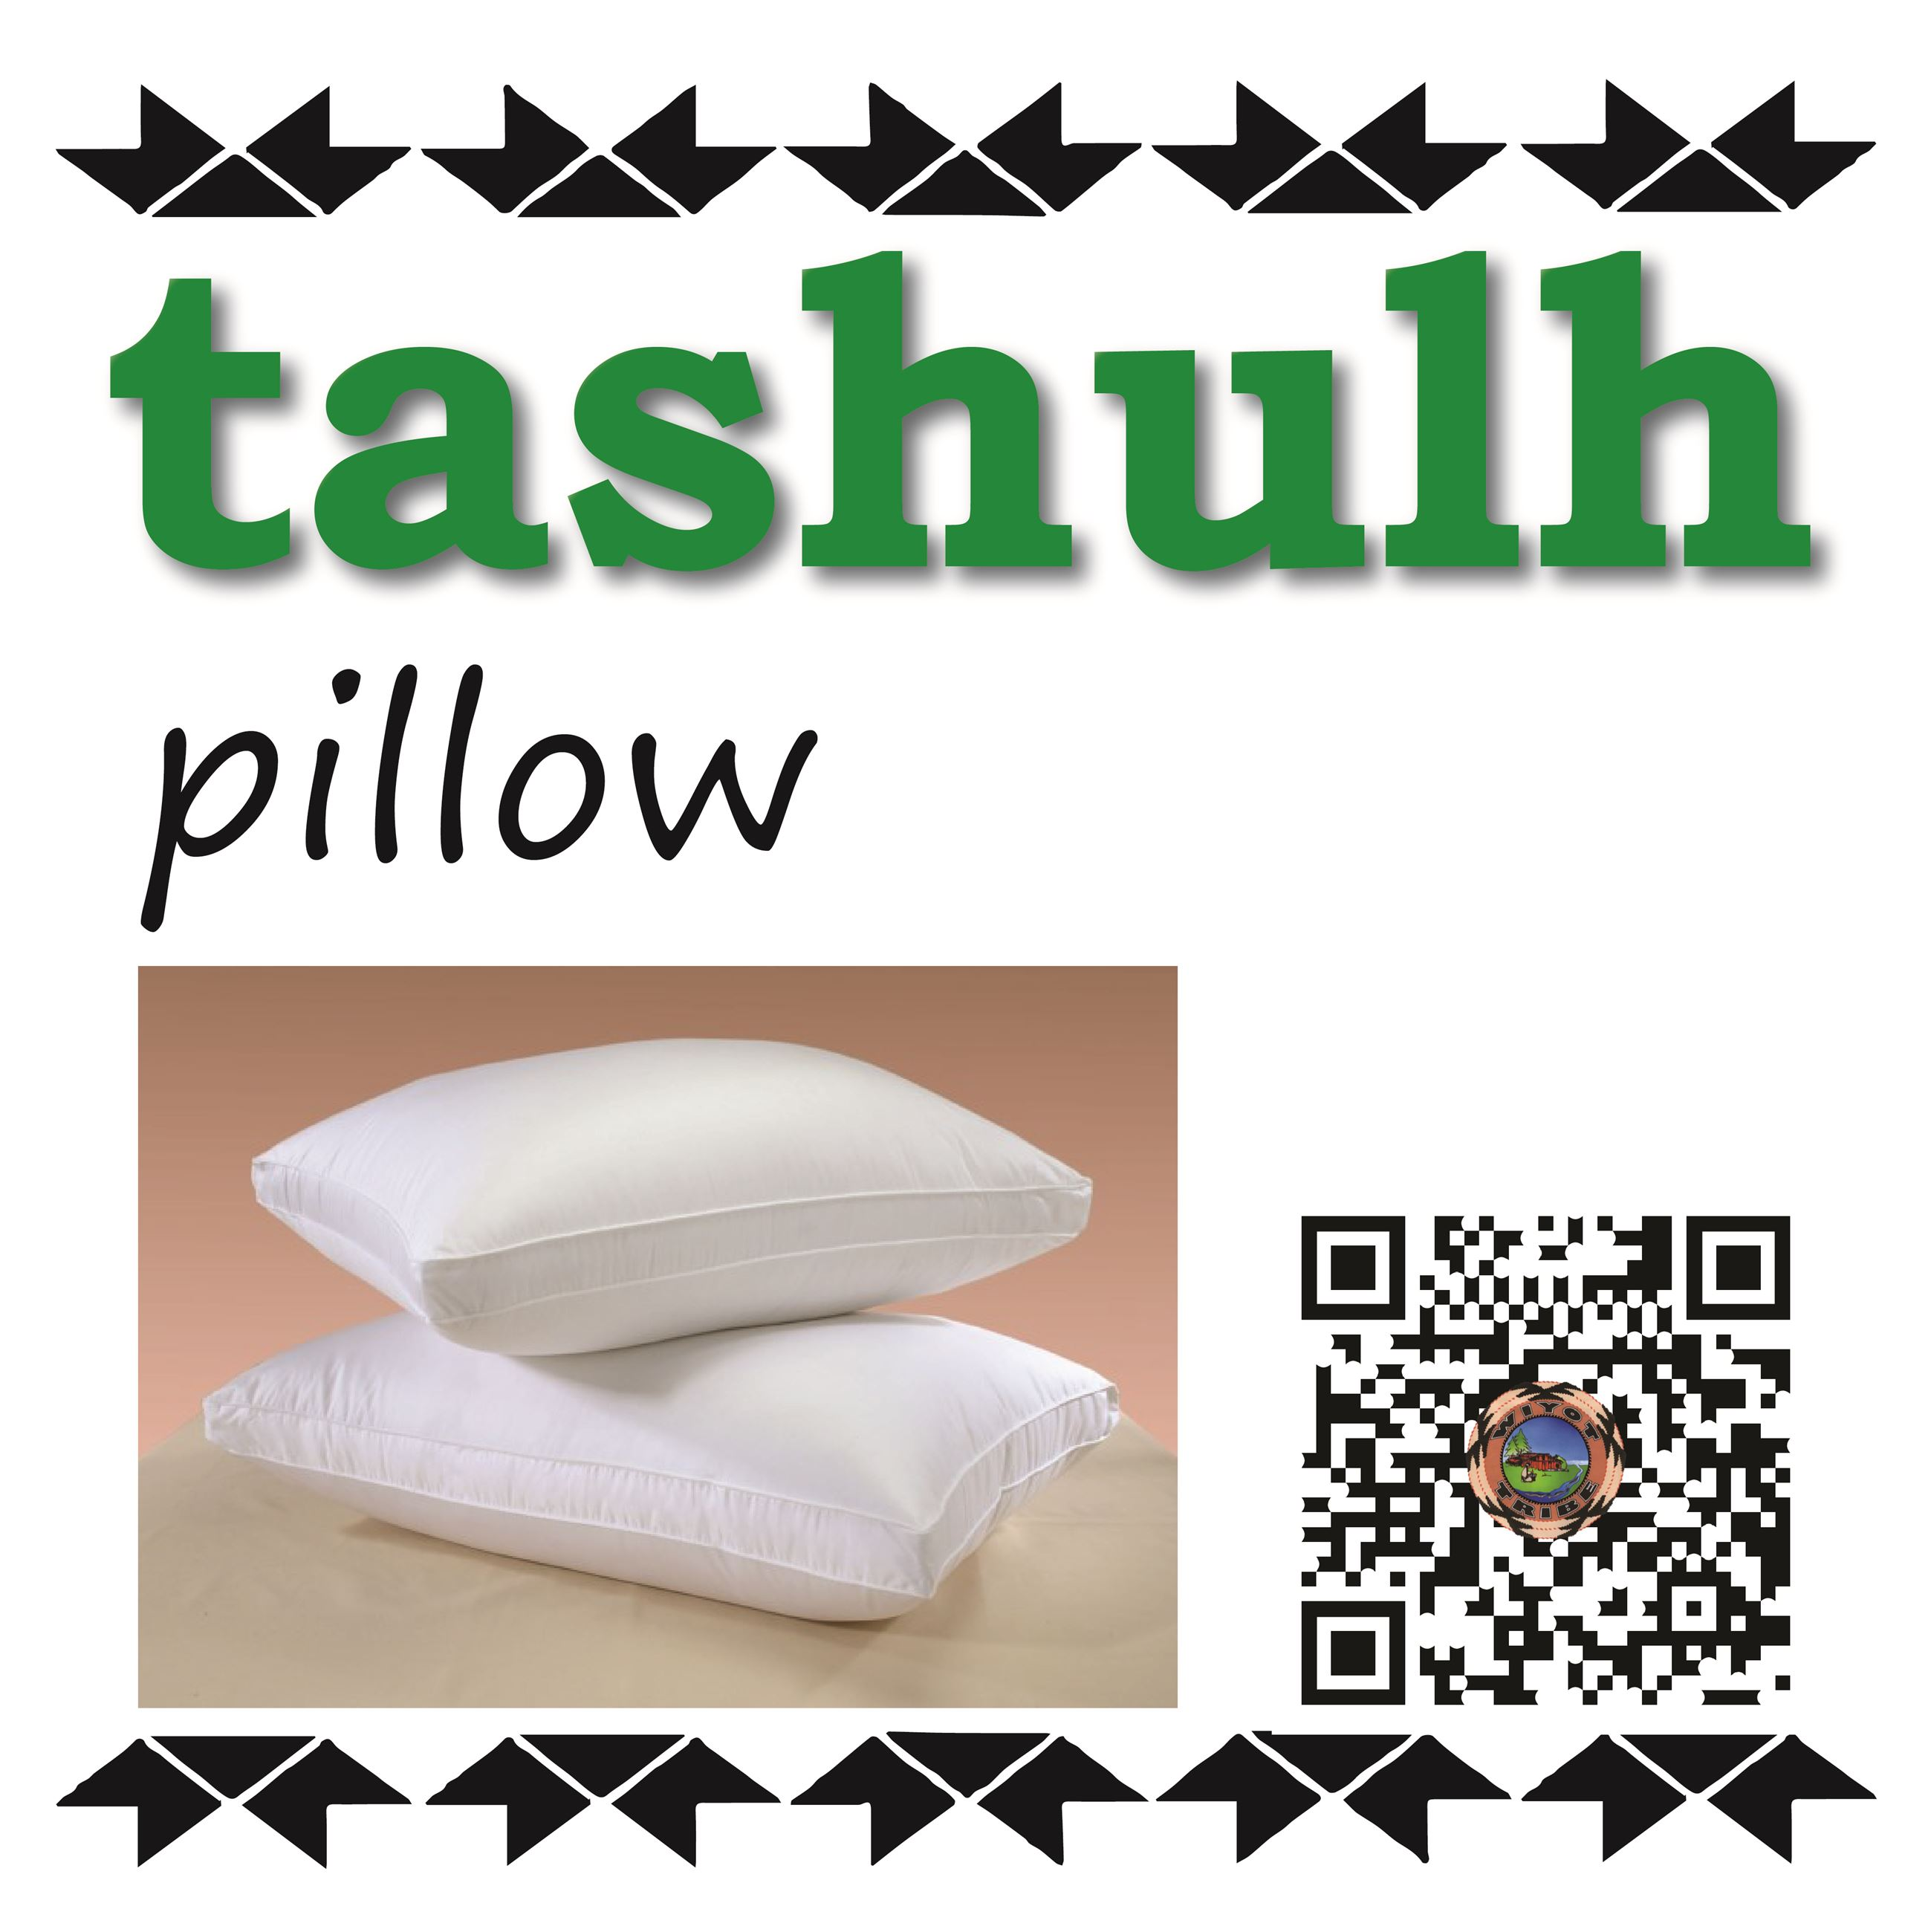 tashulh (pillow)